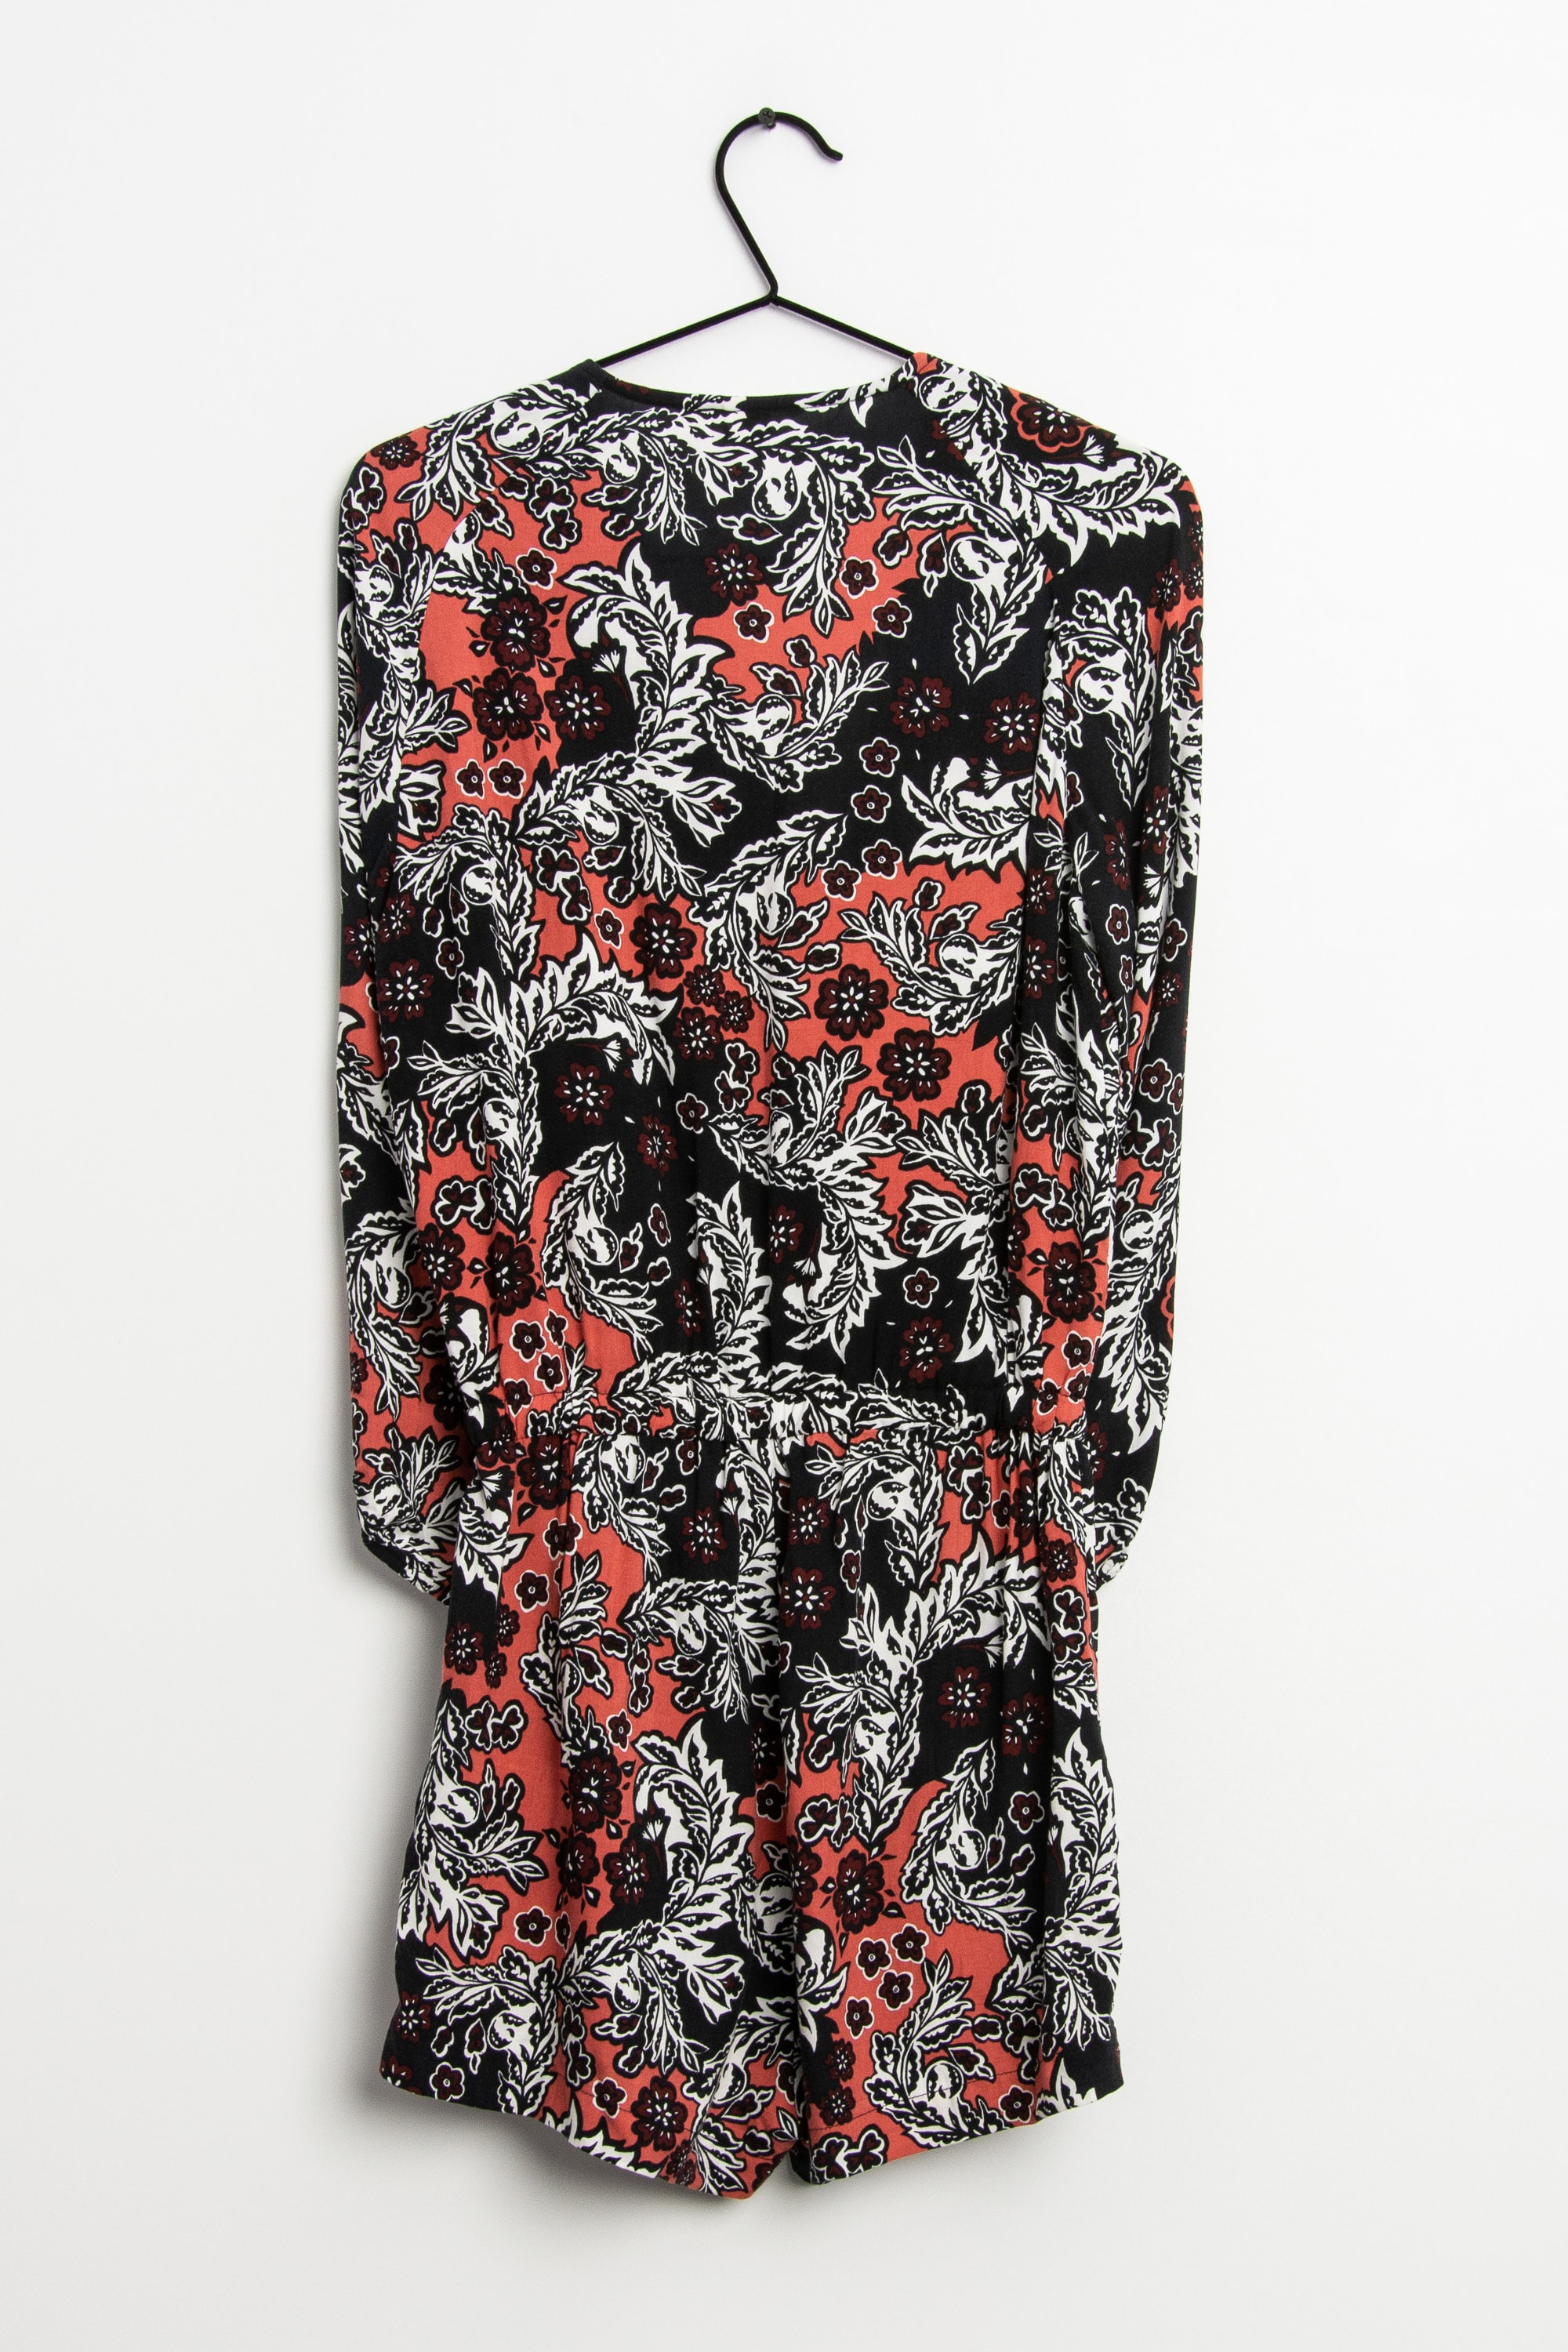 H&M Jumpsuit / Overall Mehrfarbig Gr.34